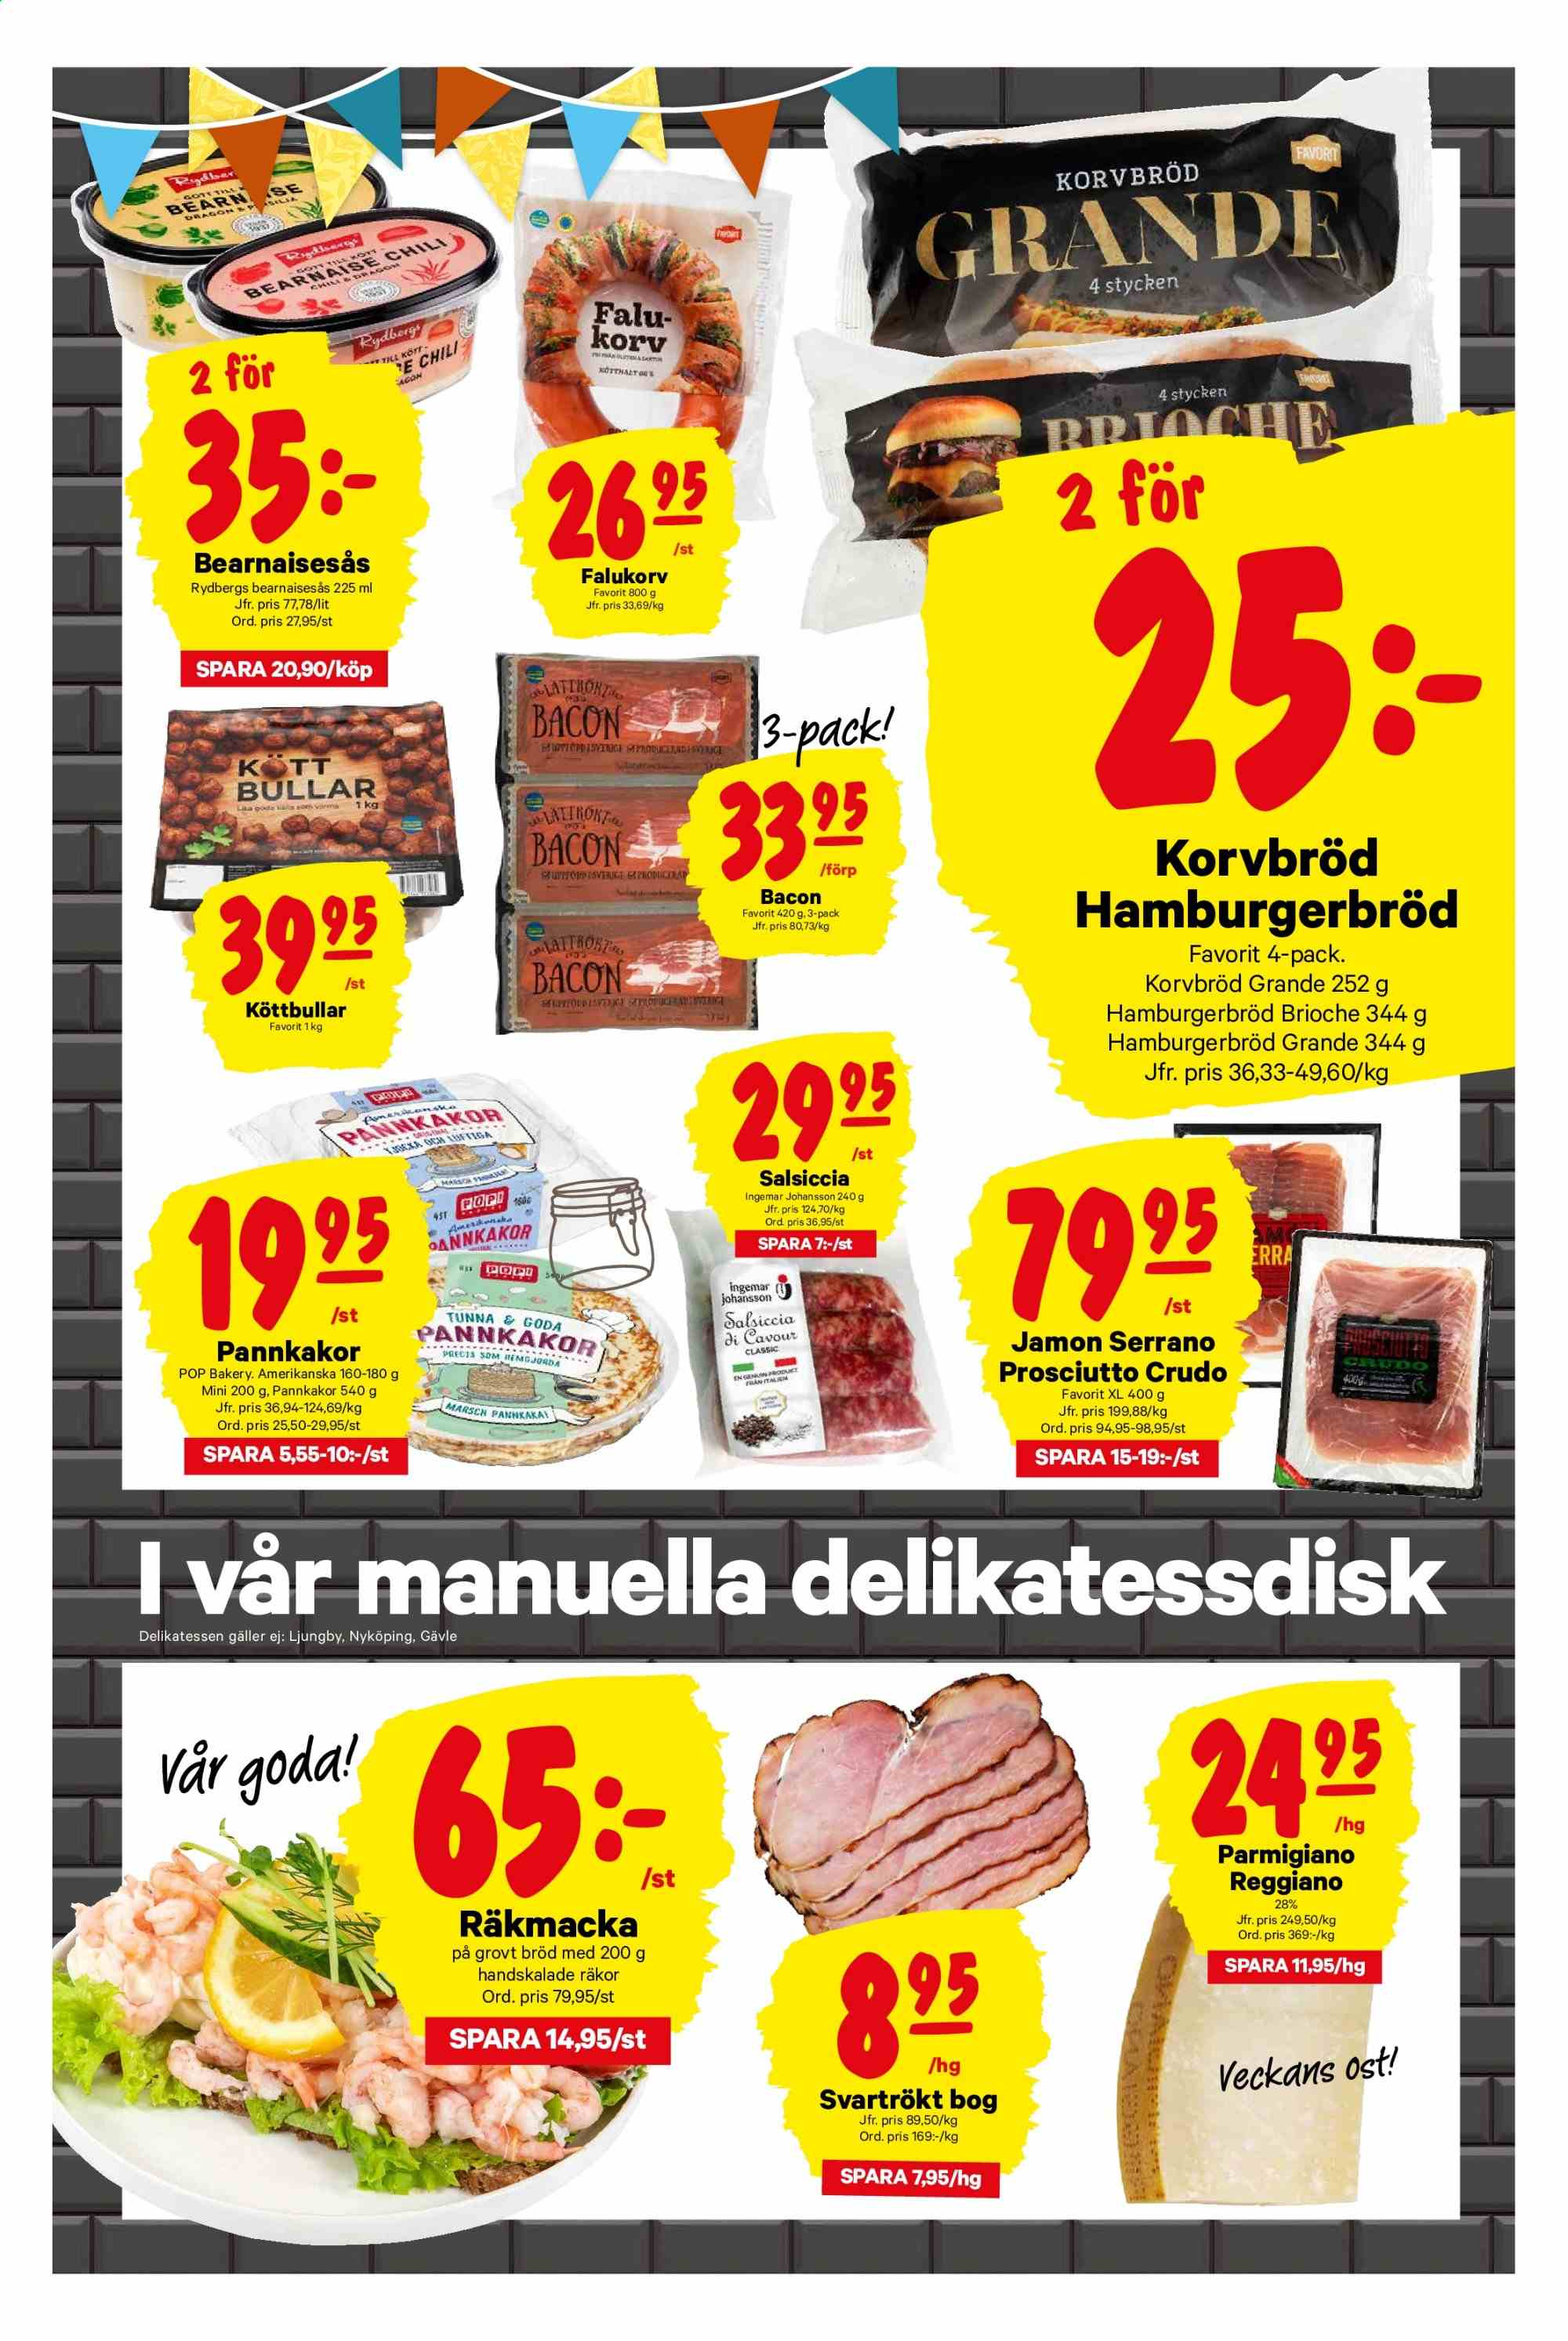 City Gross reklamblad - 1/7 2019 - 1/7 2019. Sida 3.